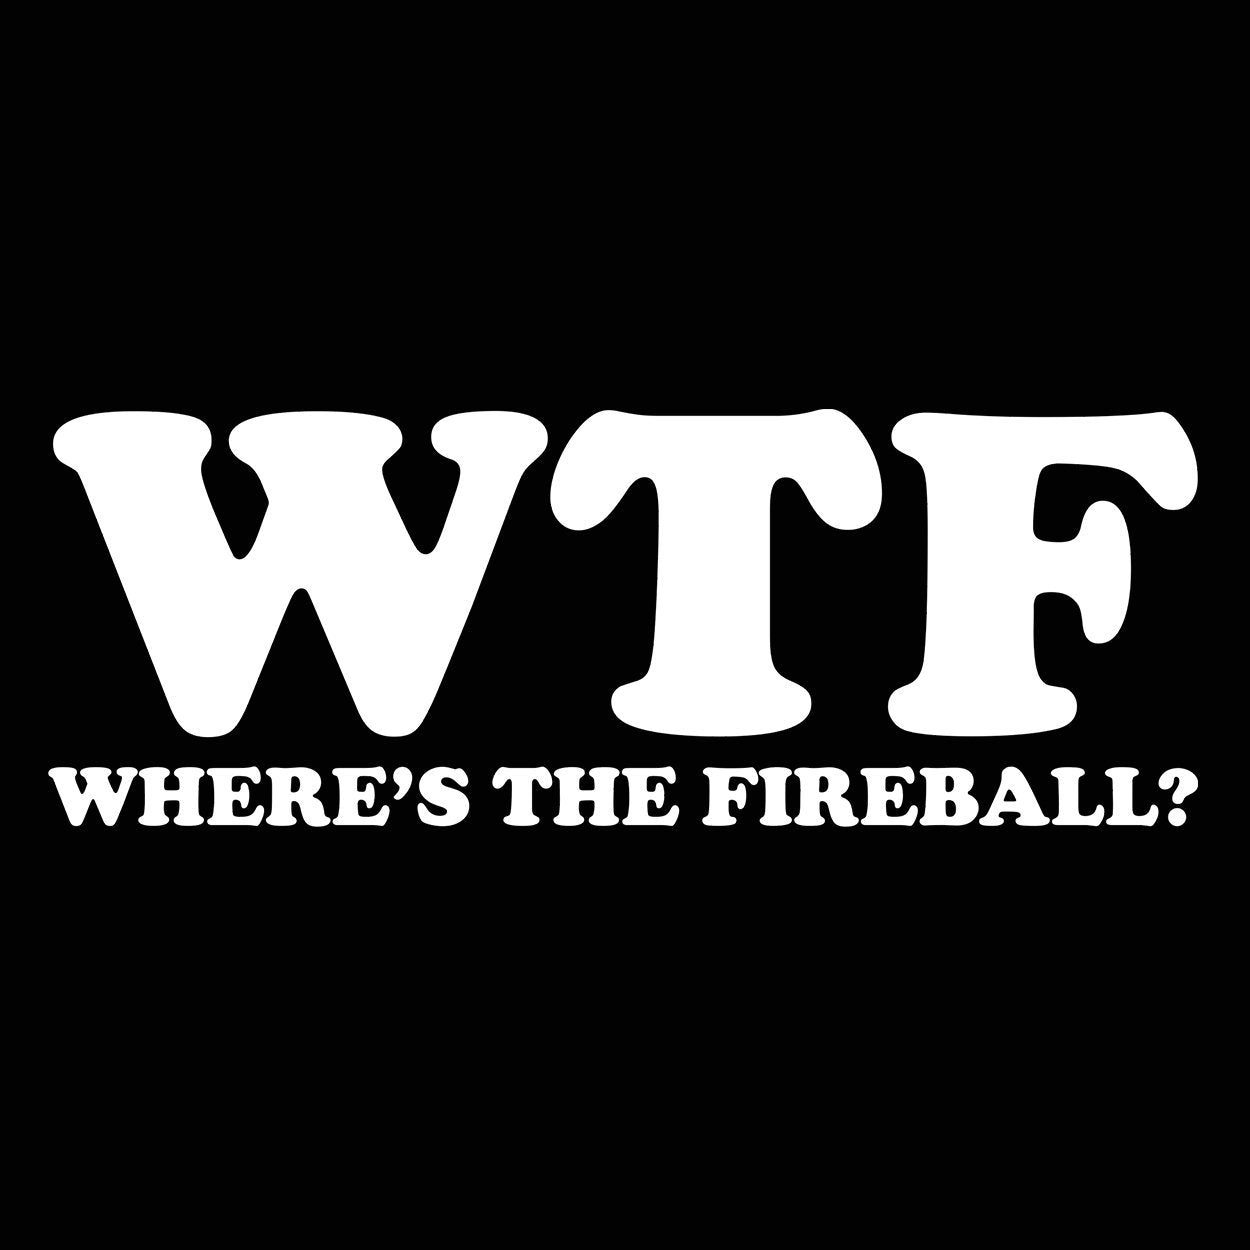 WTF Wheres The Fireball - DonkeyTees